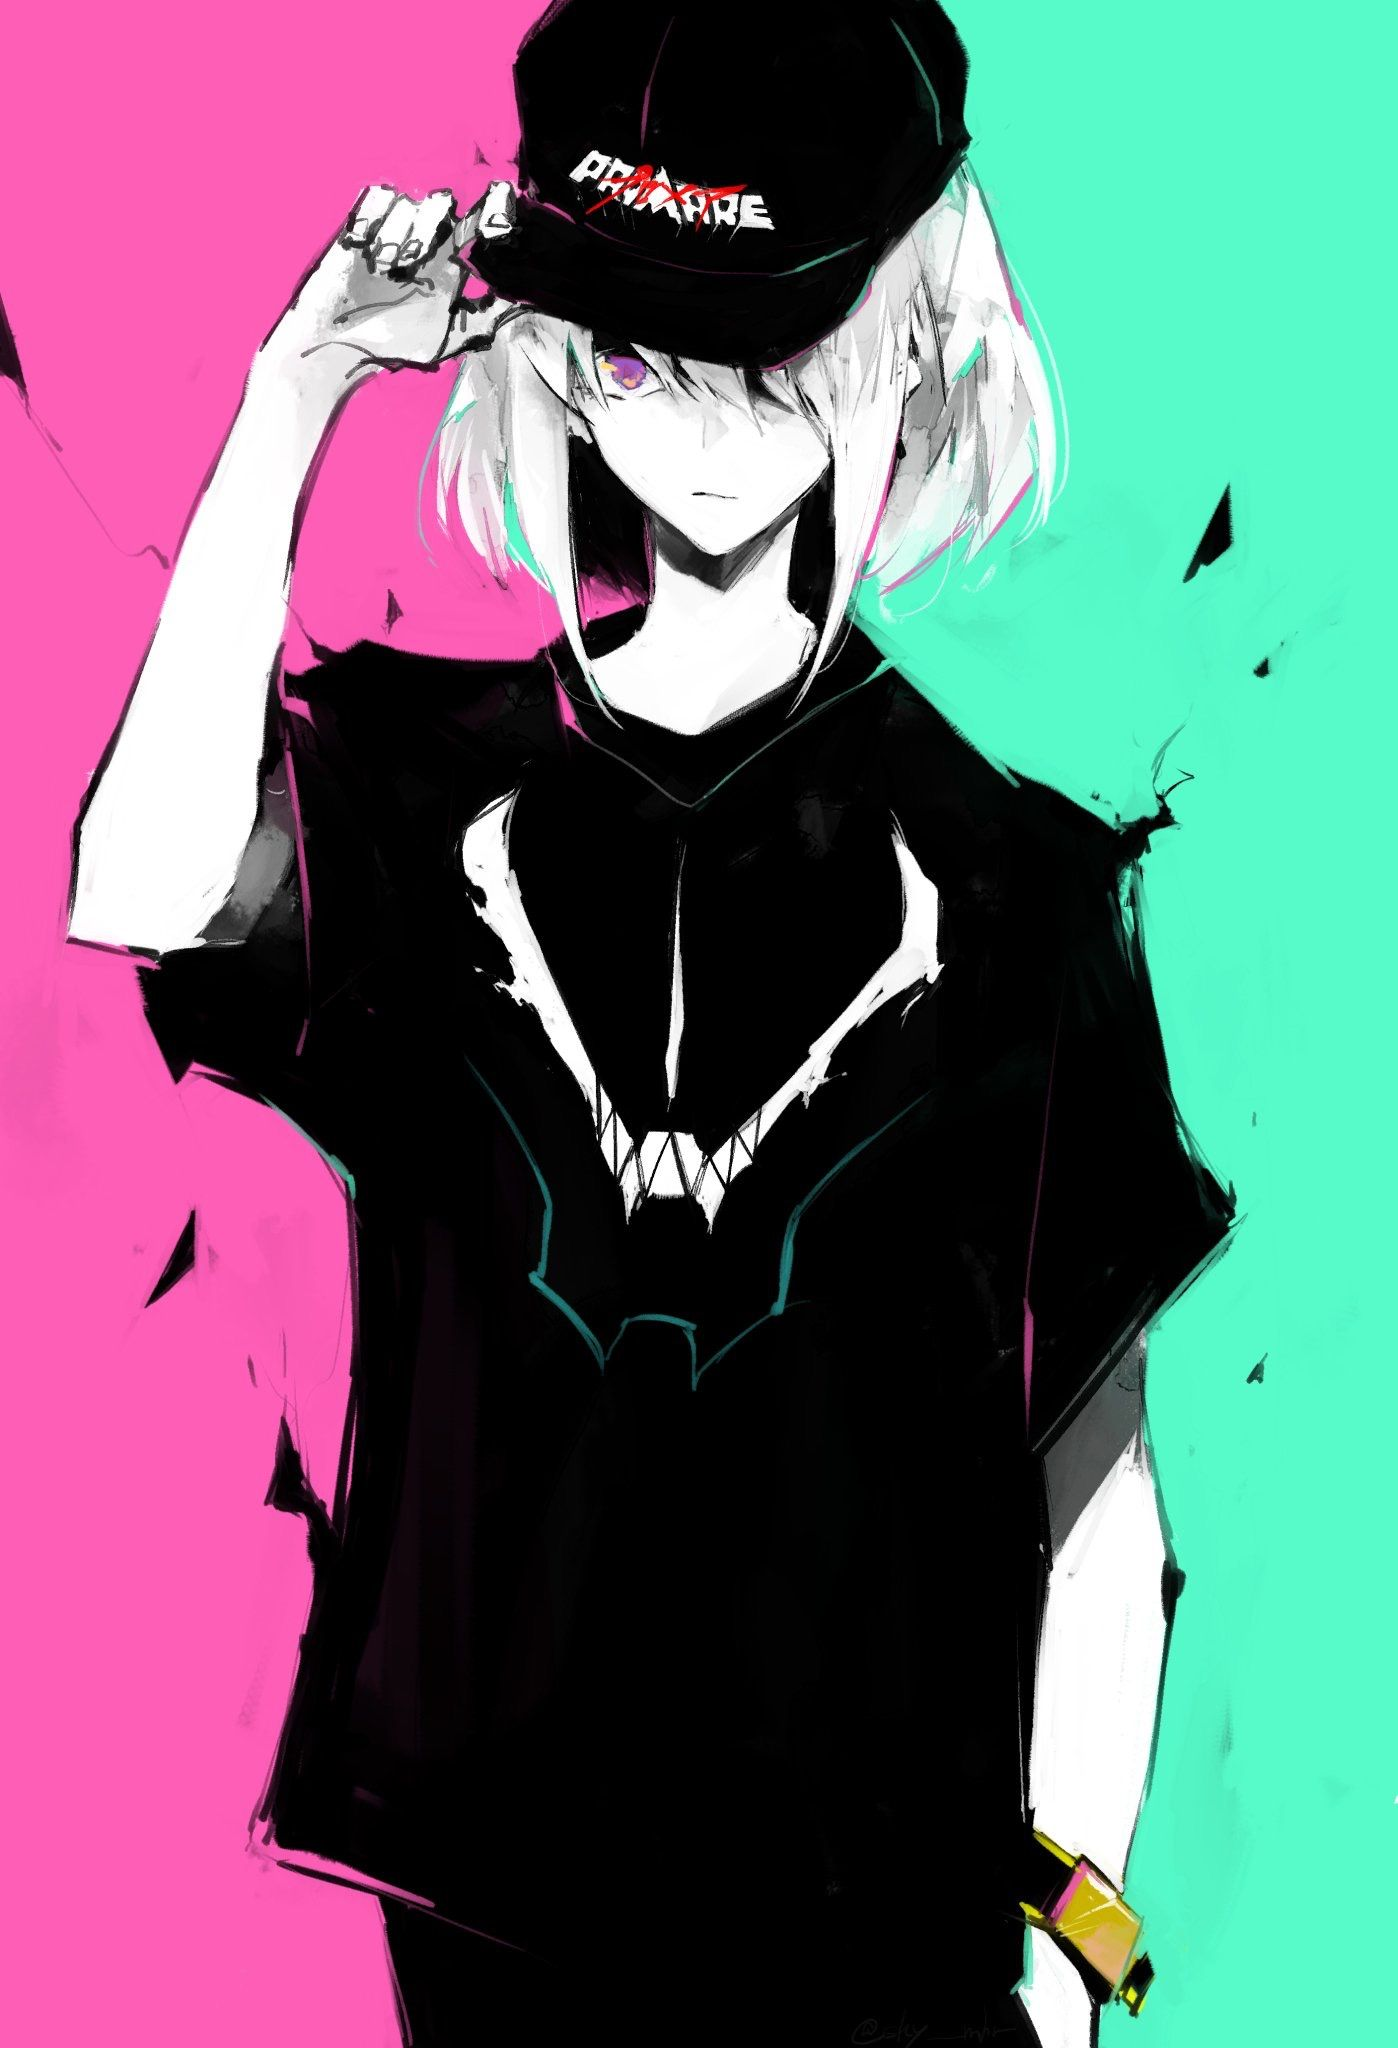 Pin by Ash Miller on Promare Anime boy, Anime crossover, Art